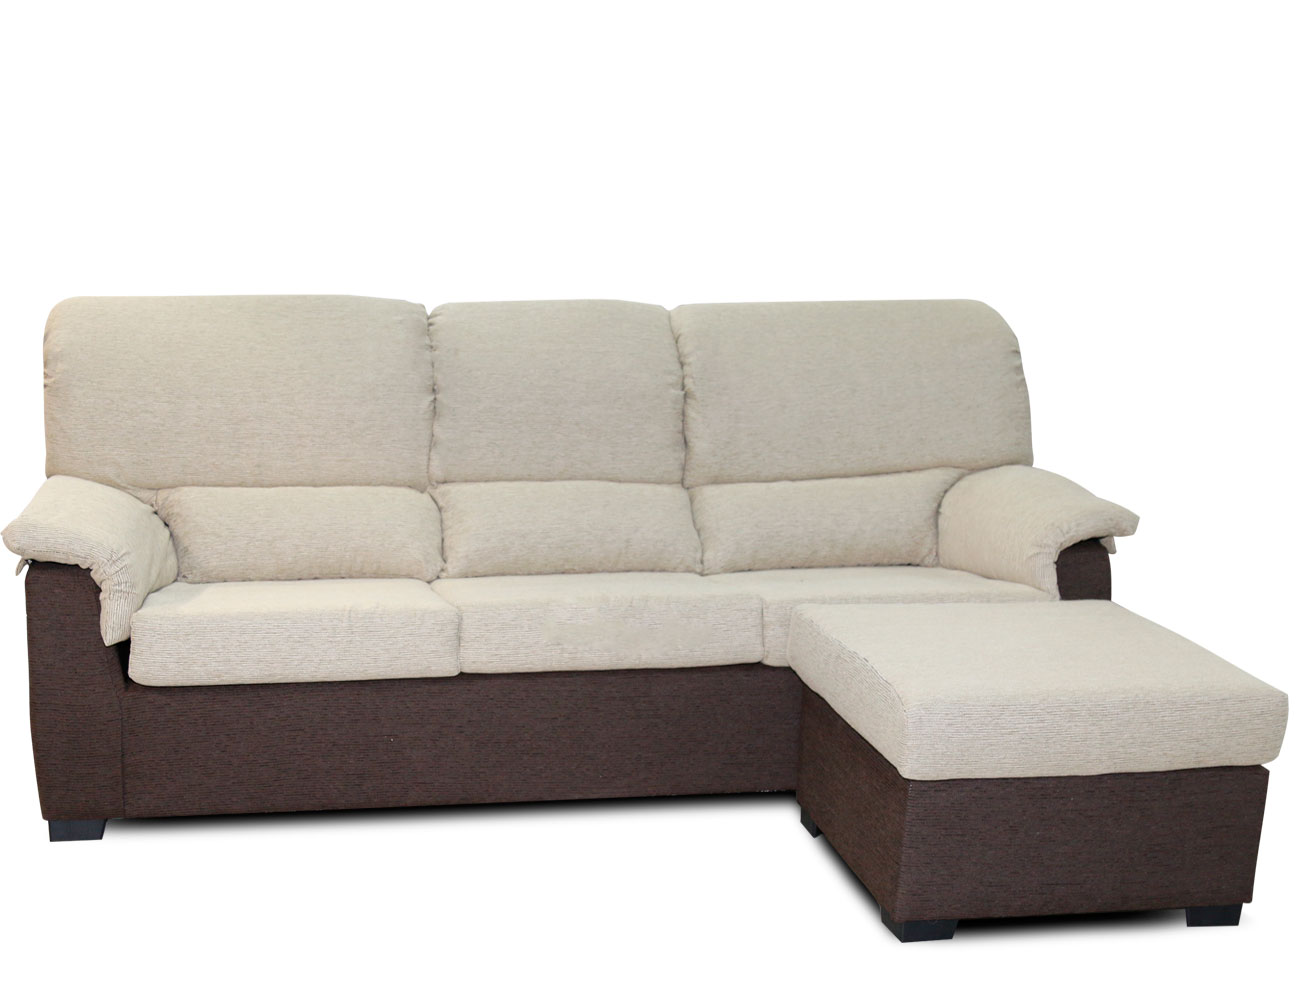 Sof chaiselongue barato con puf reversible 15285 for Sofa bueno y barato